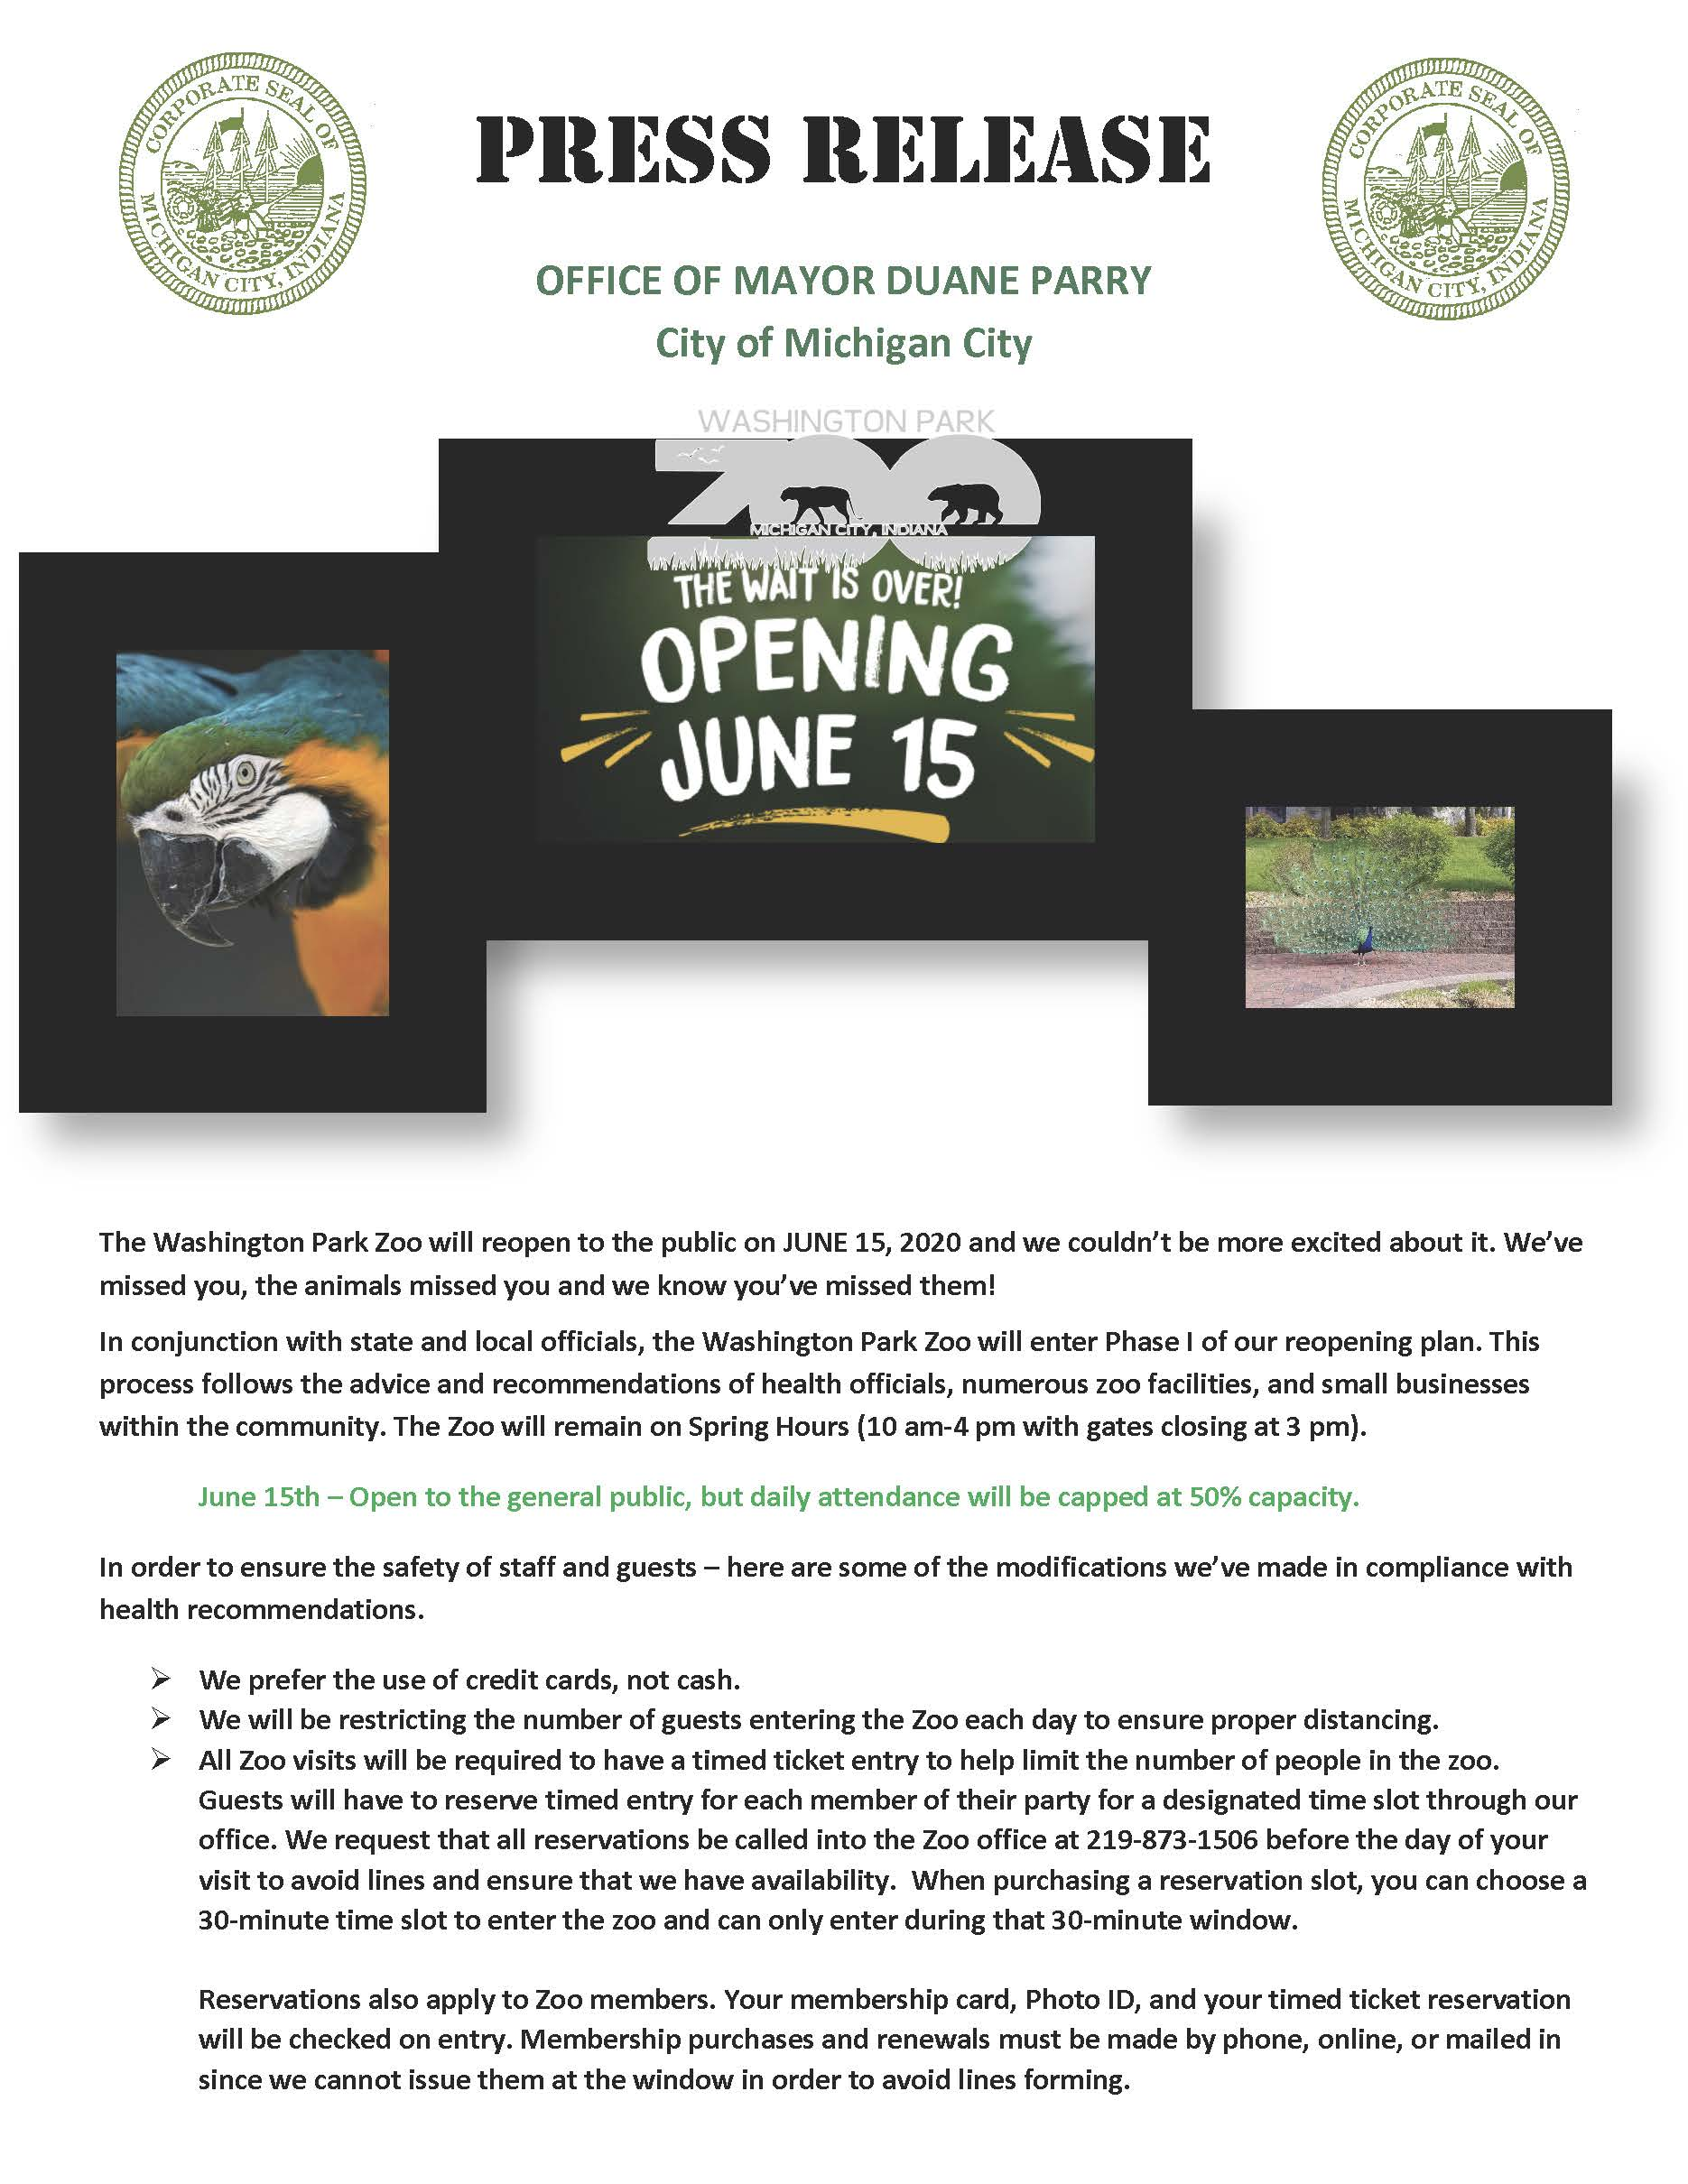 PRESS RELEASE FOR ZOO OPENING[3]_Page_1